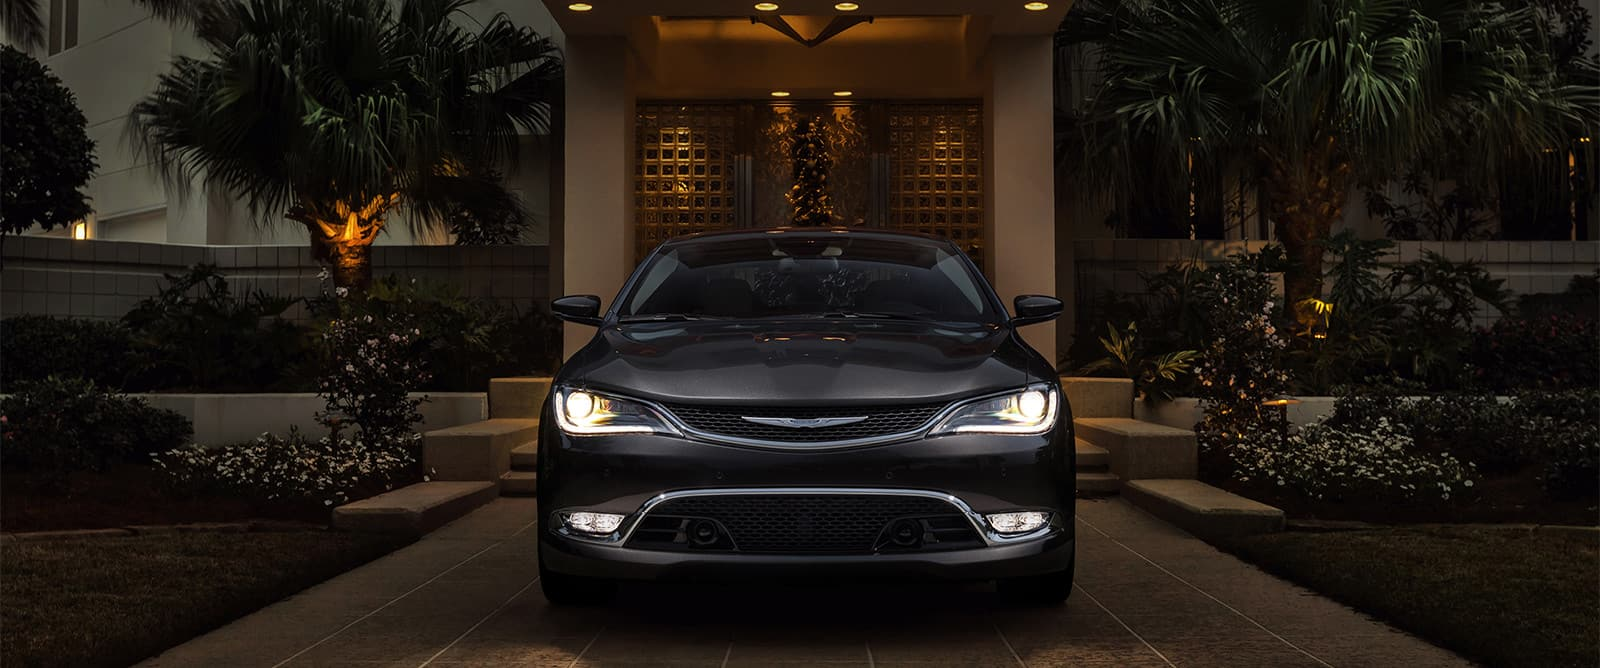 2016 Chrysler 200 Competitive Compare